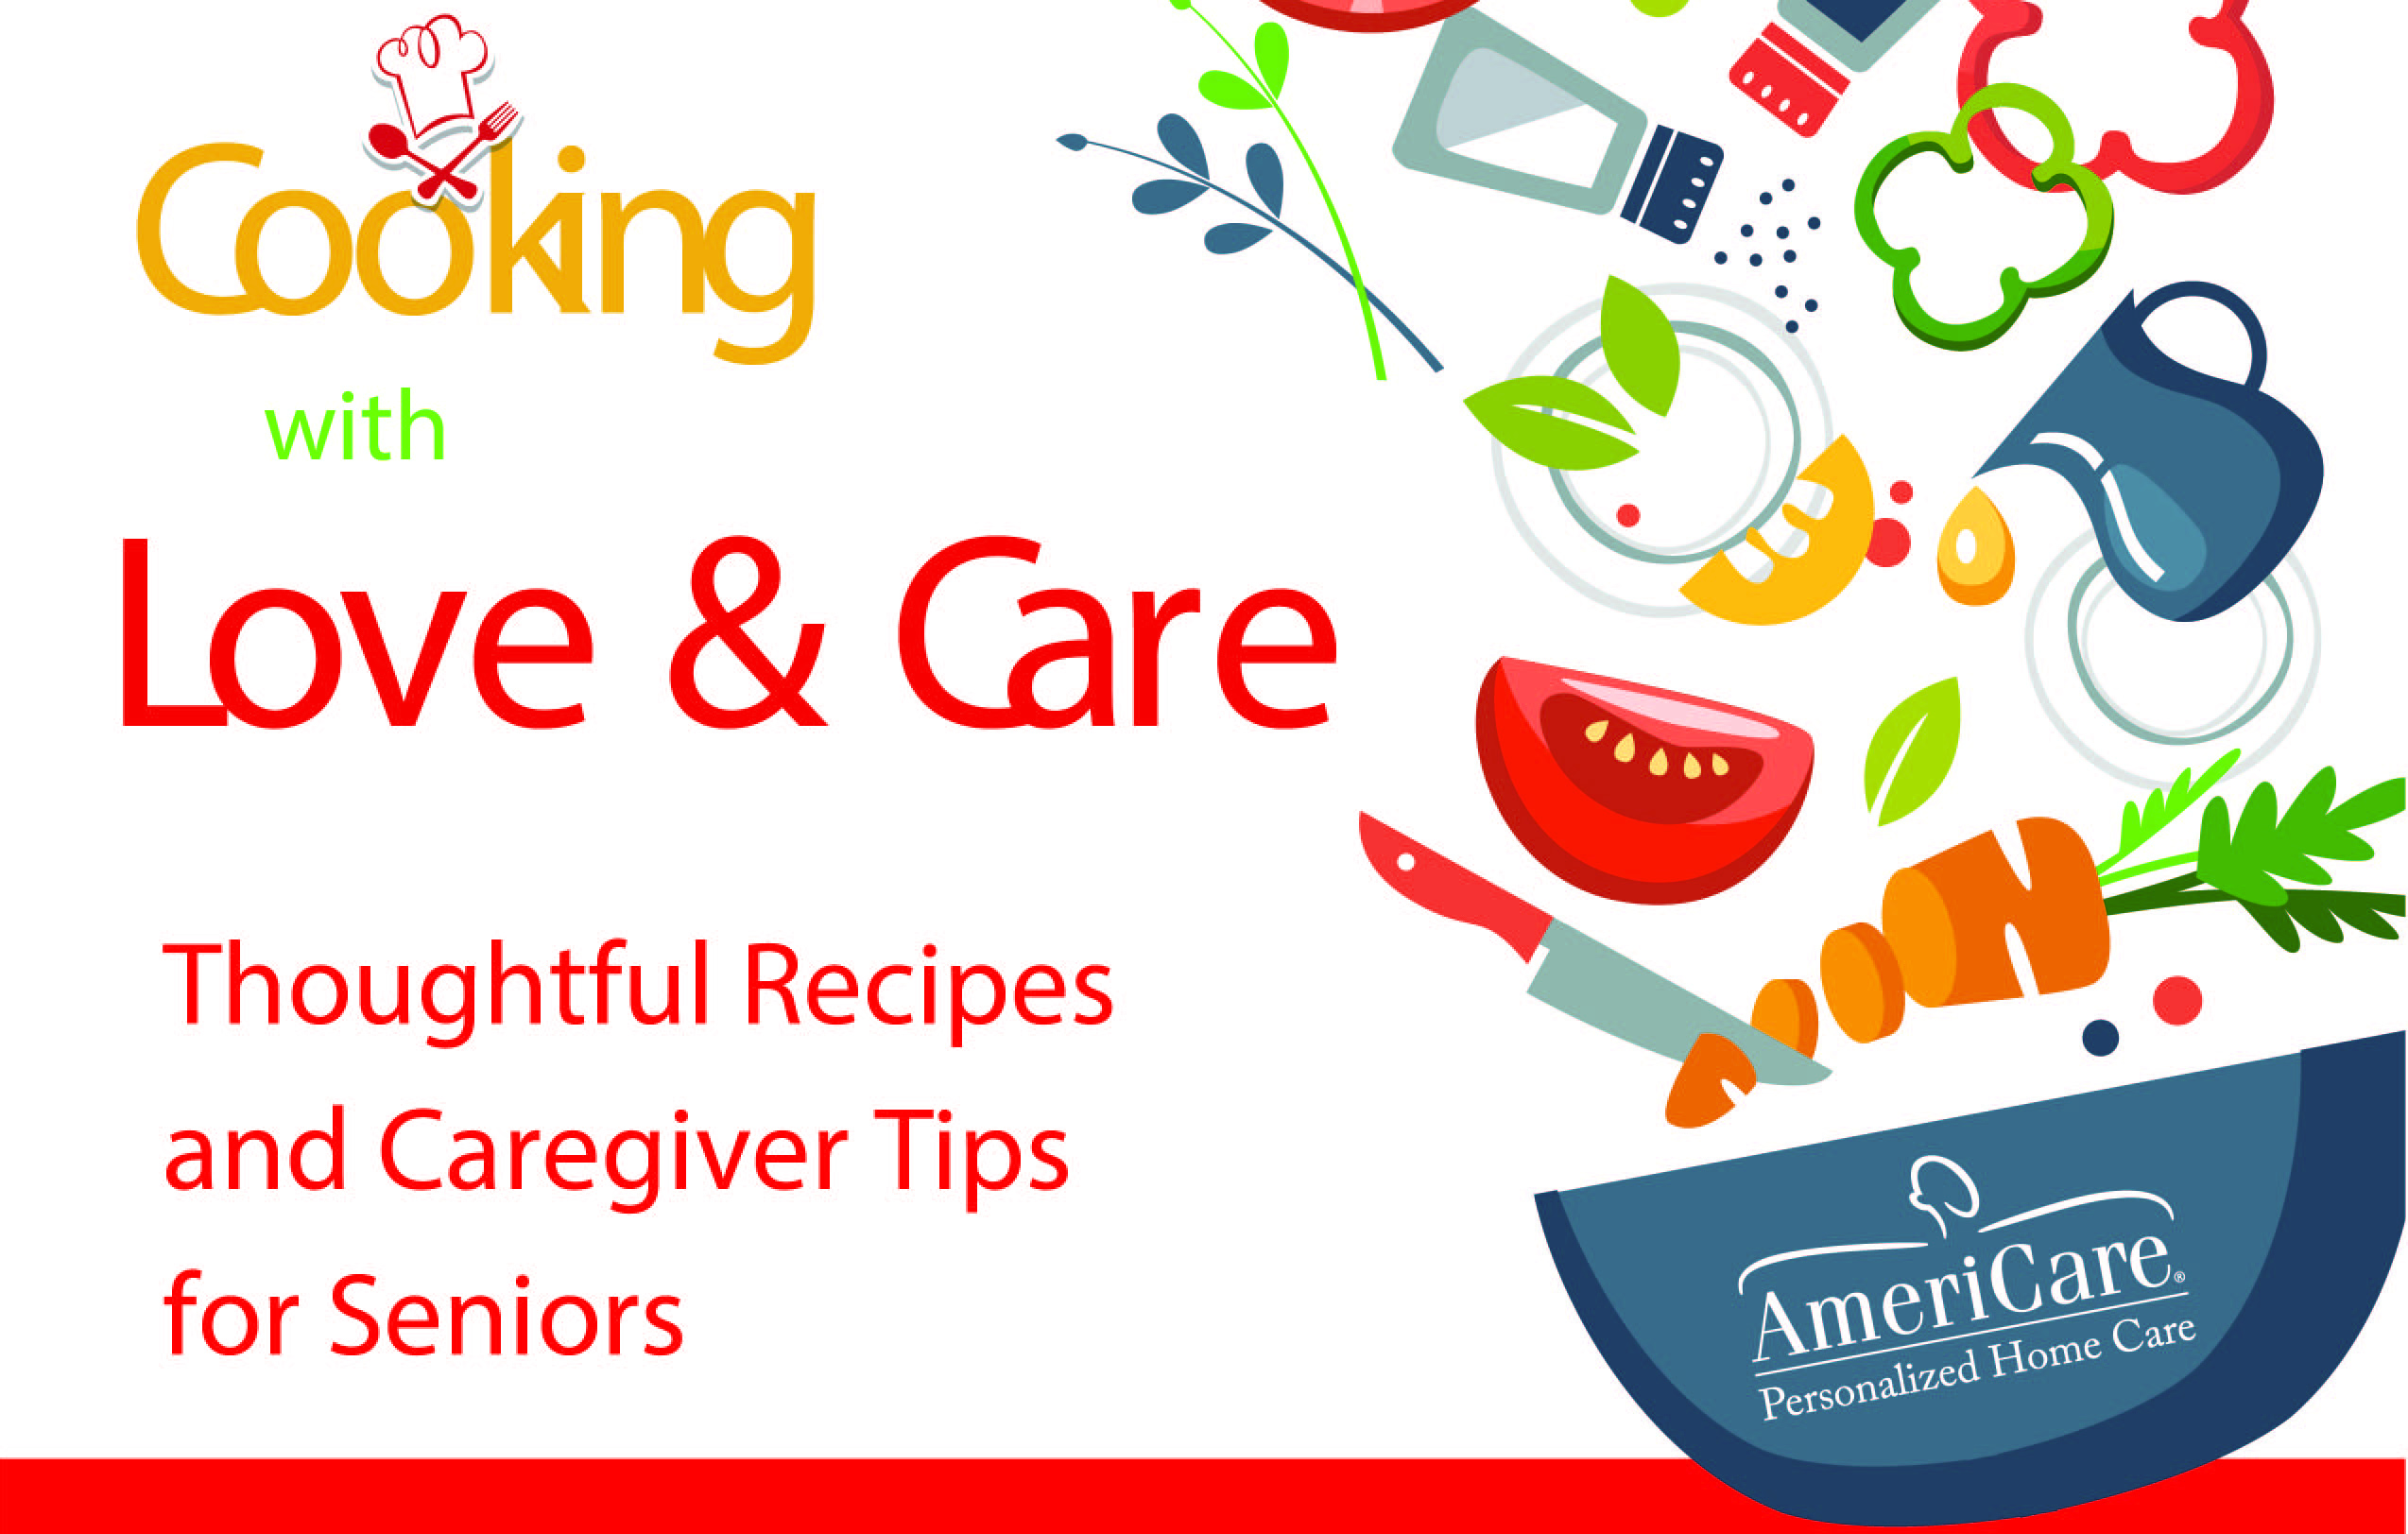 Caregiver Tips and Recipes